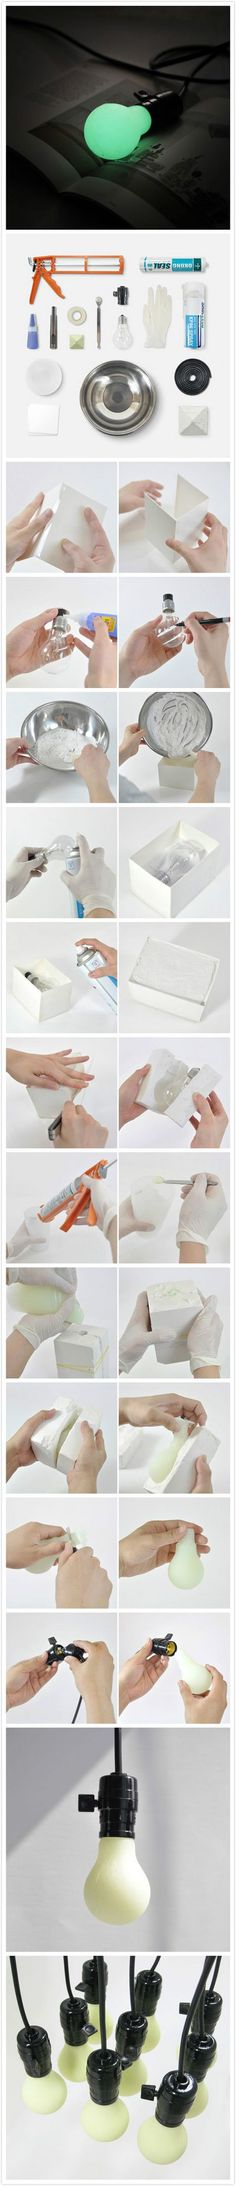 DIY Luminous Bulb. You Need: Silica gel gun, glass glue, glue, knife, luminous pigment, light bulb, bulb base, spoon, nitrile gloves, release agent, stirring cup, PVC plate (1 mm), bowl, wire and gypsum powder. Make a cube mold with PVC plate. Draw a line in the middle of the light bulb. Filled with gypsum in the mold. Spraying the bulb release agent, and then put bulb in the mold. Spray release agent, and then fill the gypsum.